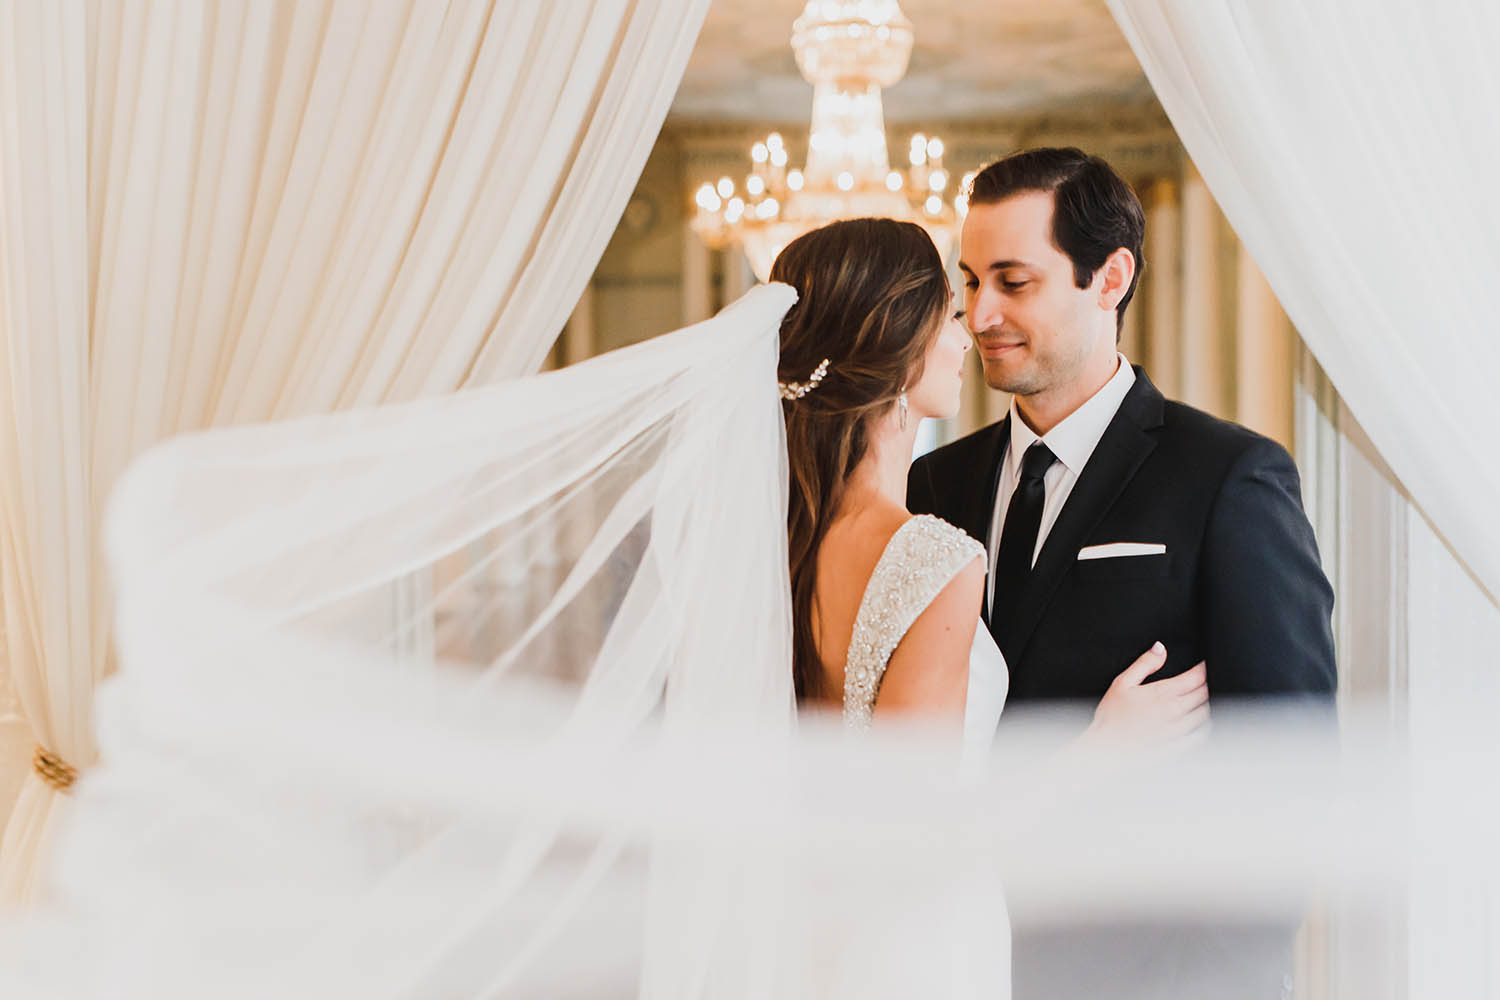 A bride and groom dance their first dance in an elegant ballroom as her veil floats out behind her.